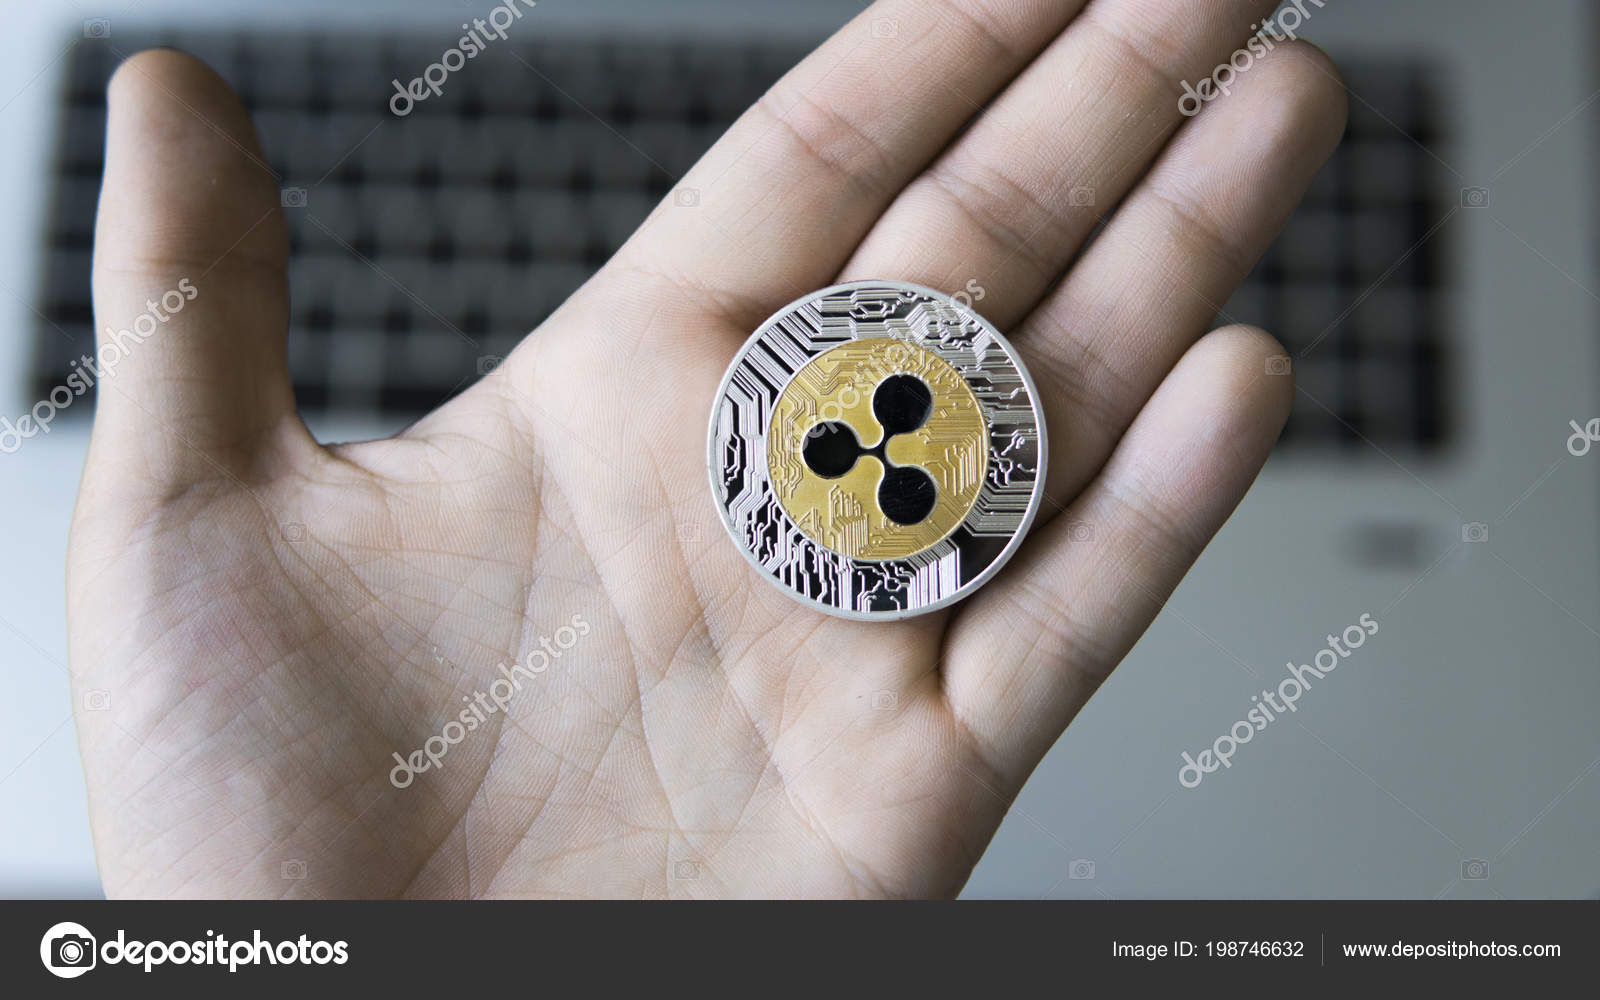 Ripple coin on a laptop keyboard closeup on a miner hand